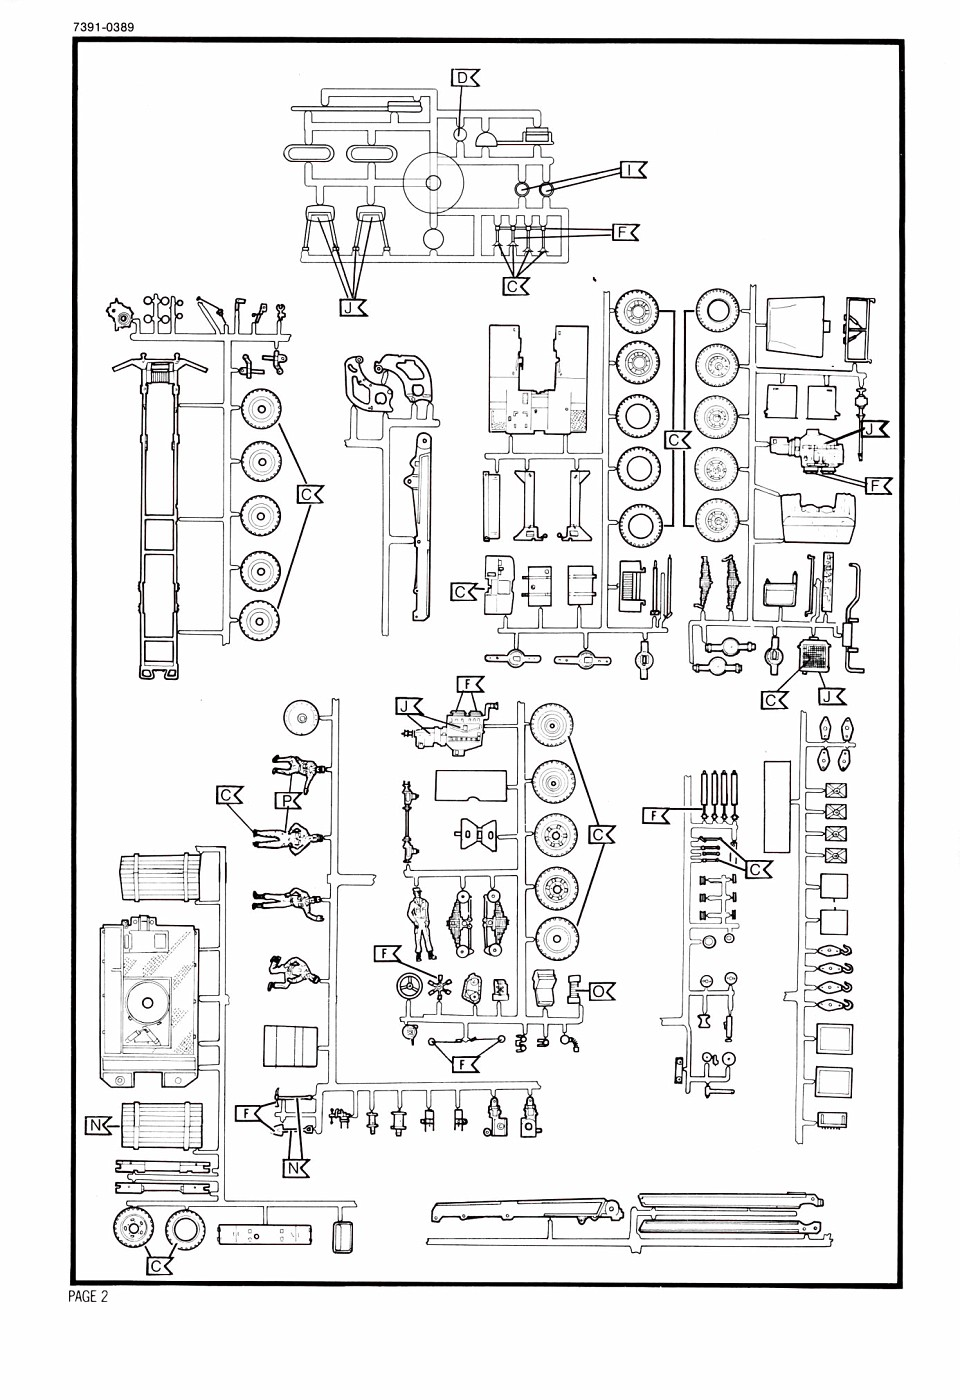 kenworth w900 wiring diagrams kenworth image similiar kenworth w900 wiring schematic diagrams keywords on kenworth w900 wiring diagrams